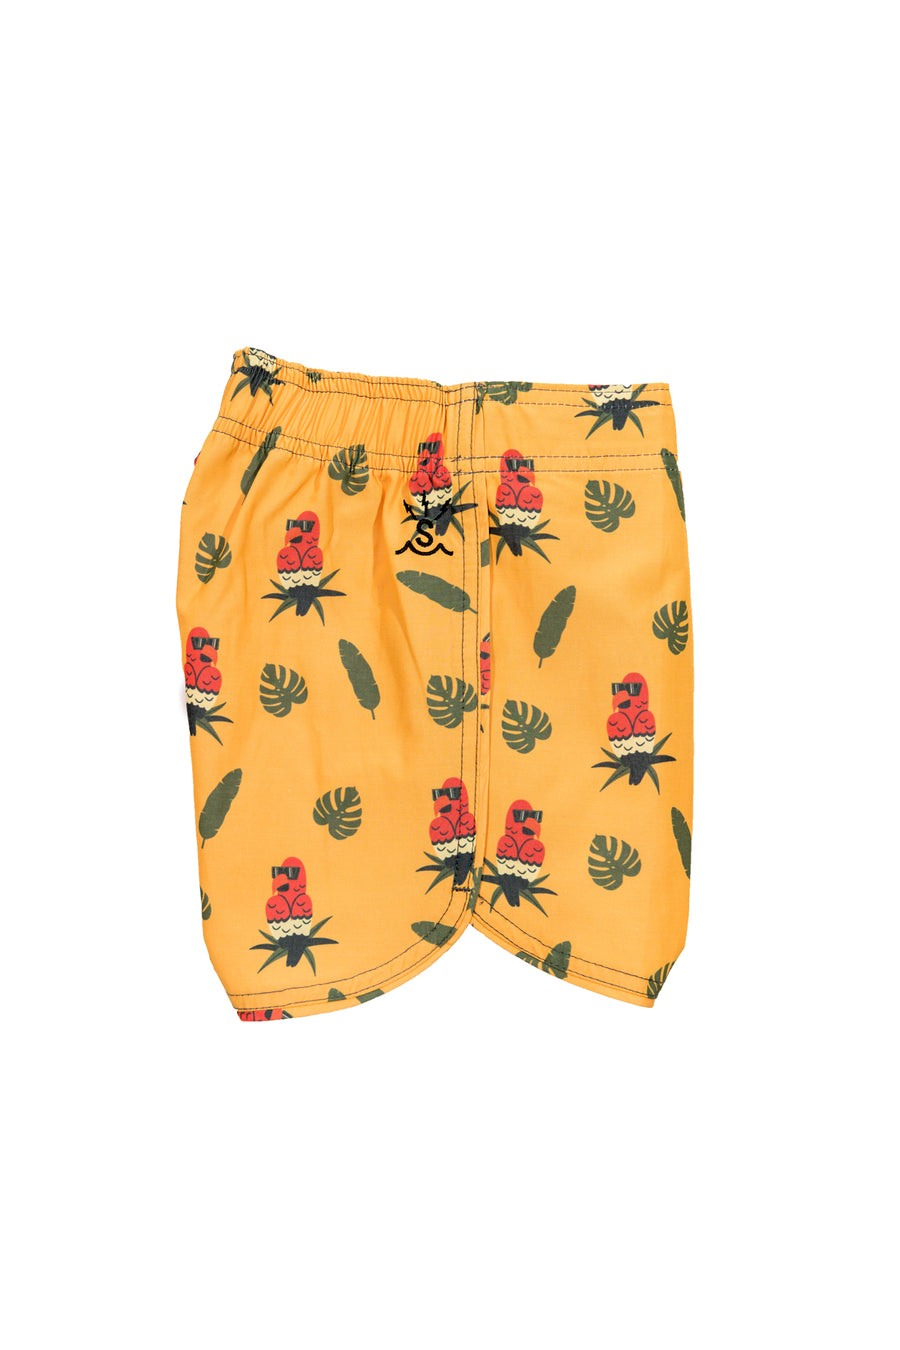 Seaesta Surf x Tiny Whales / Chill Parrot Boardshorts